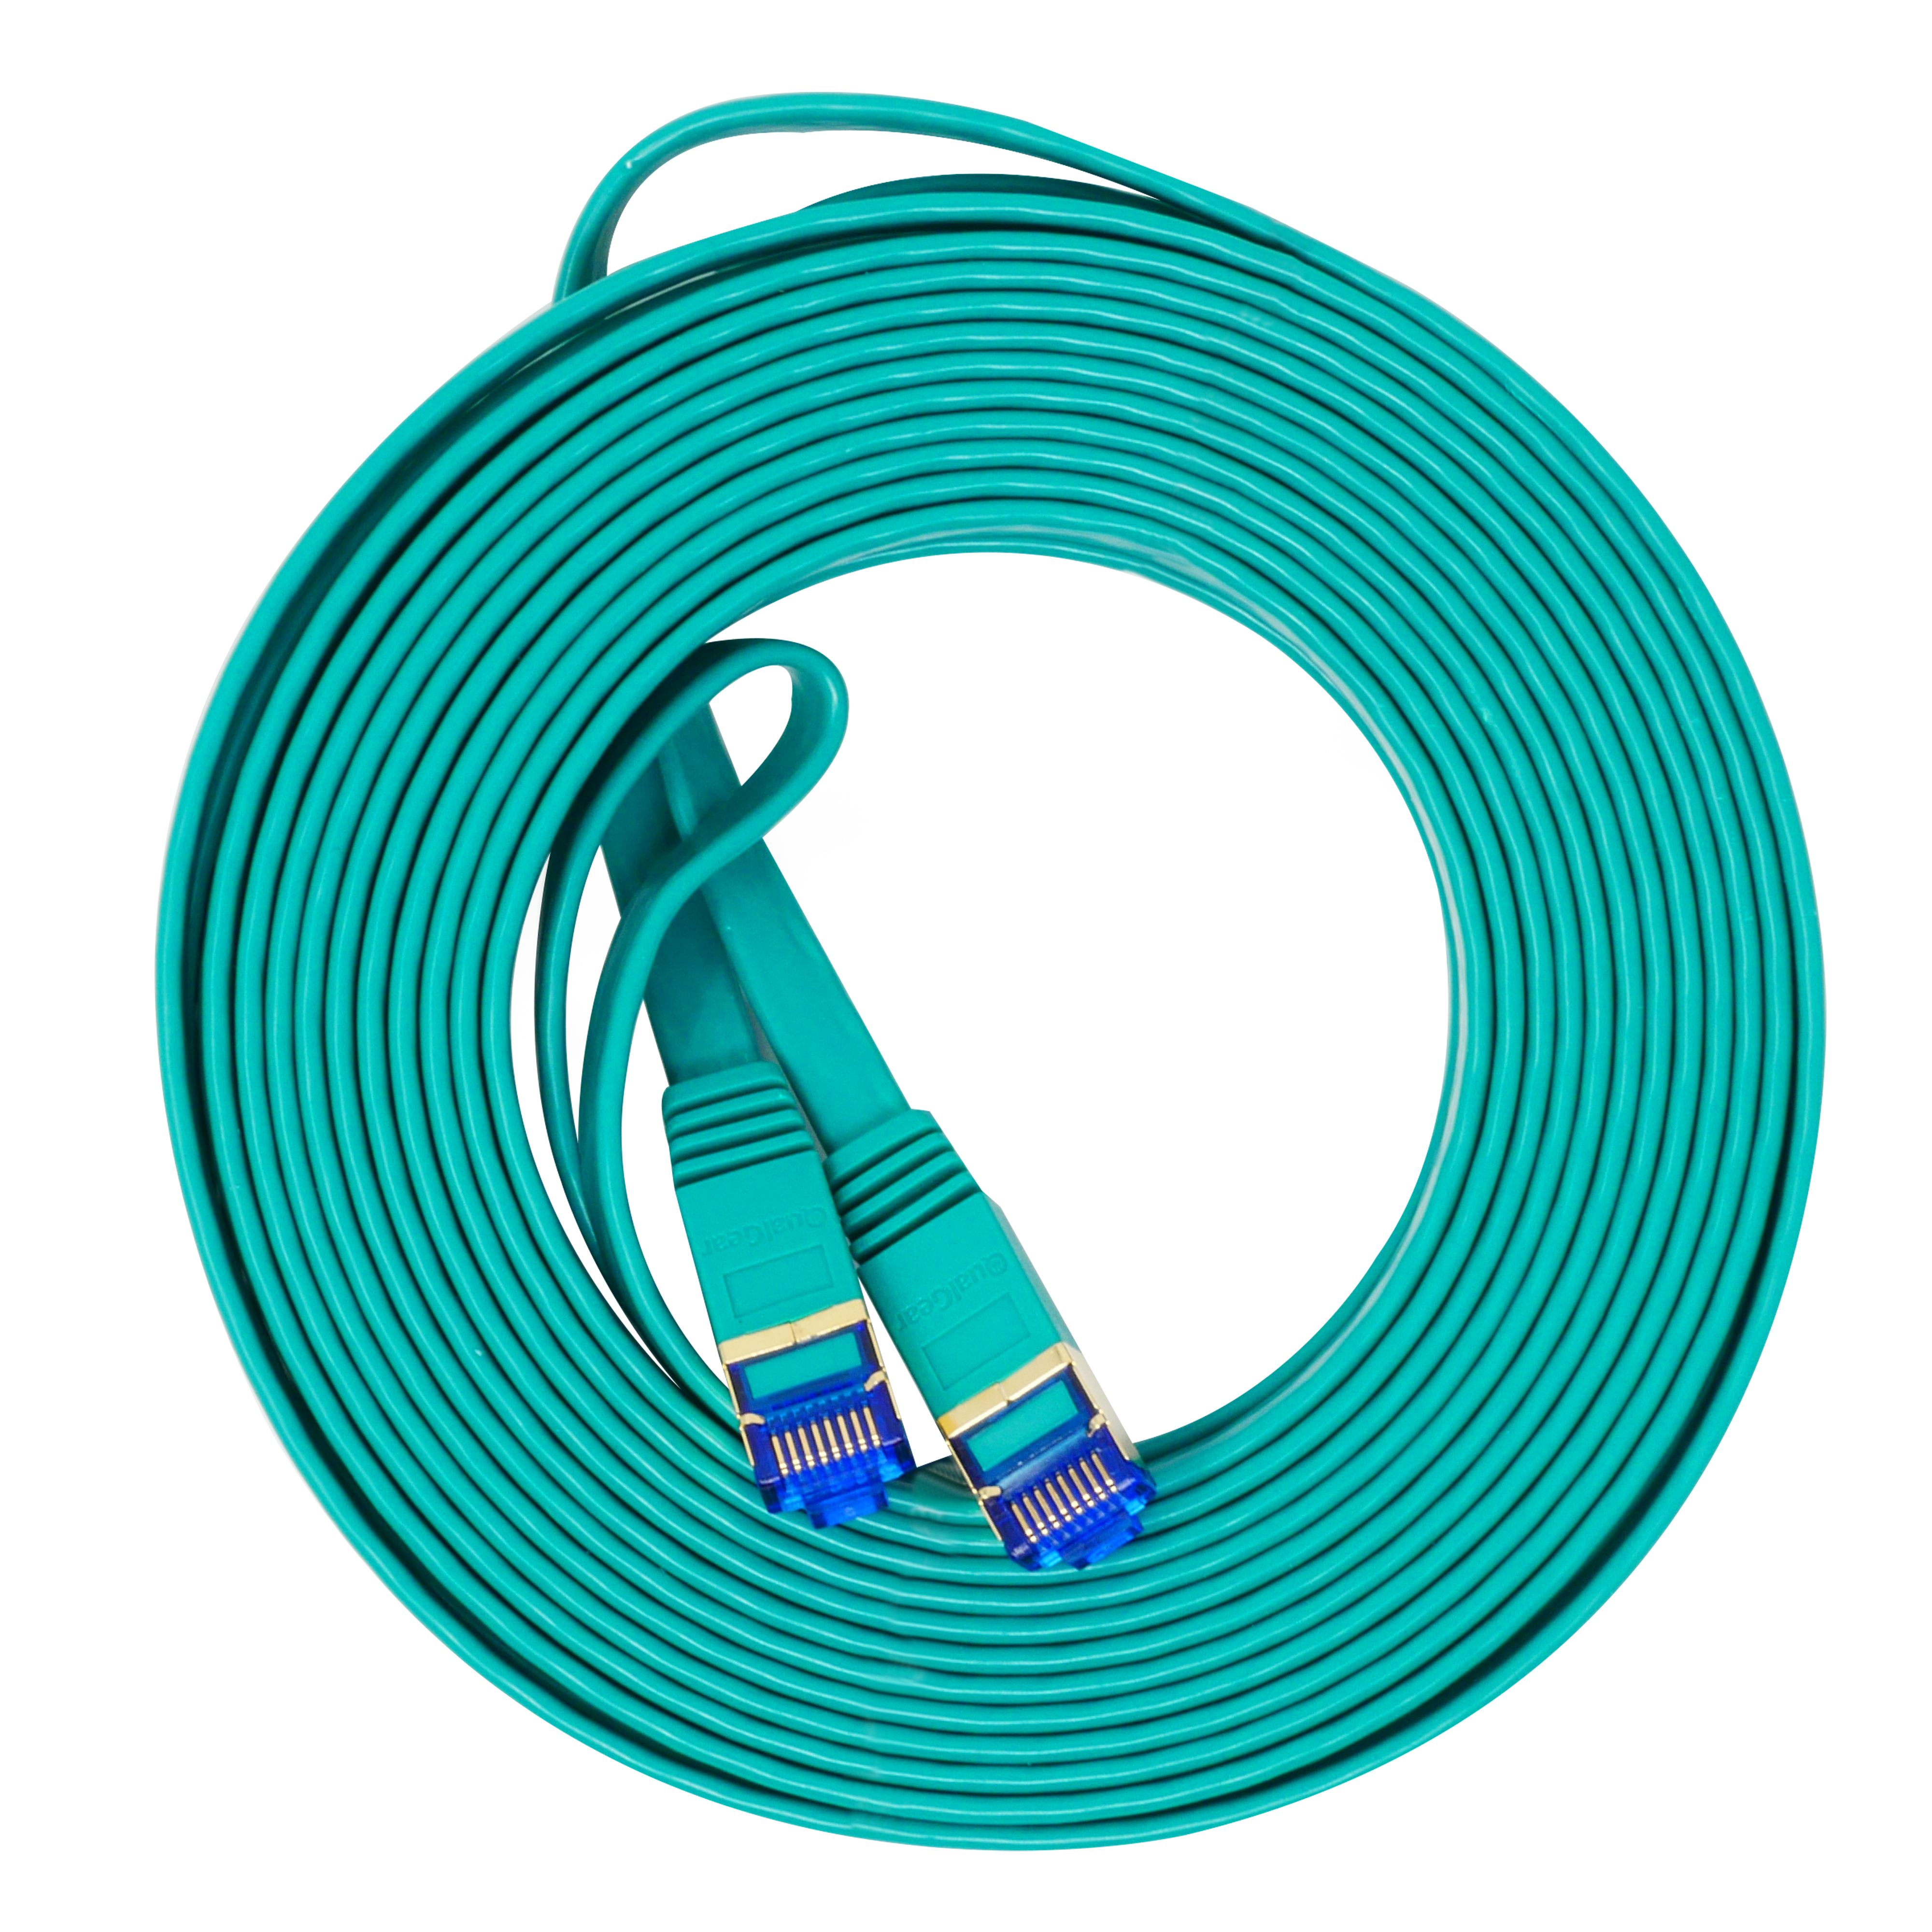 QualGear QG-CAT7F-25FT-GRN CAT 7 S/FTP Ethernet Cable Length 25 feet - 26 AWG, 10 Gbps, Gold Plated Contacts, RJ45, 99.99% OFC Copper, Color Green